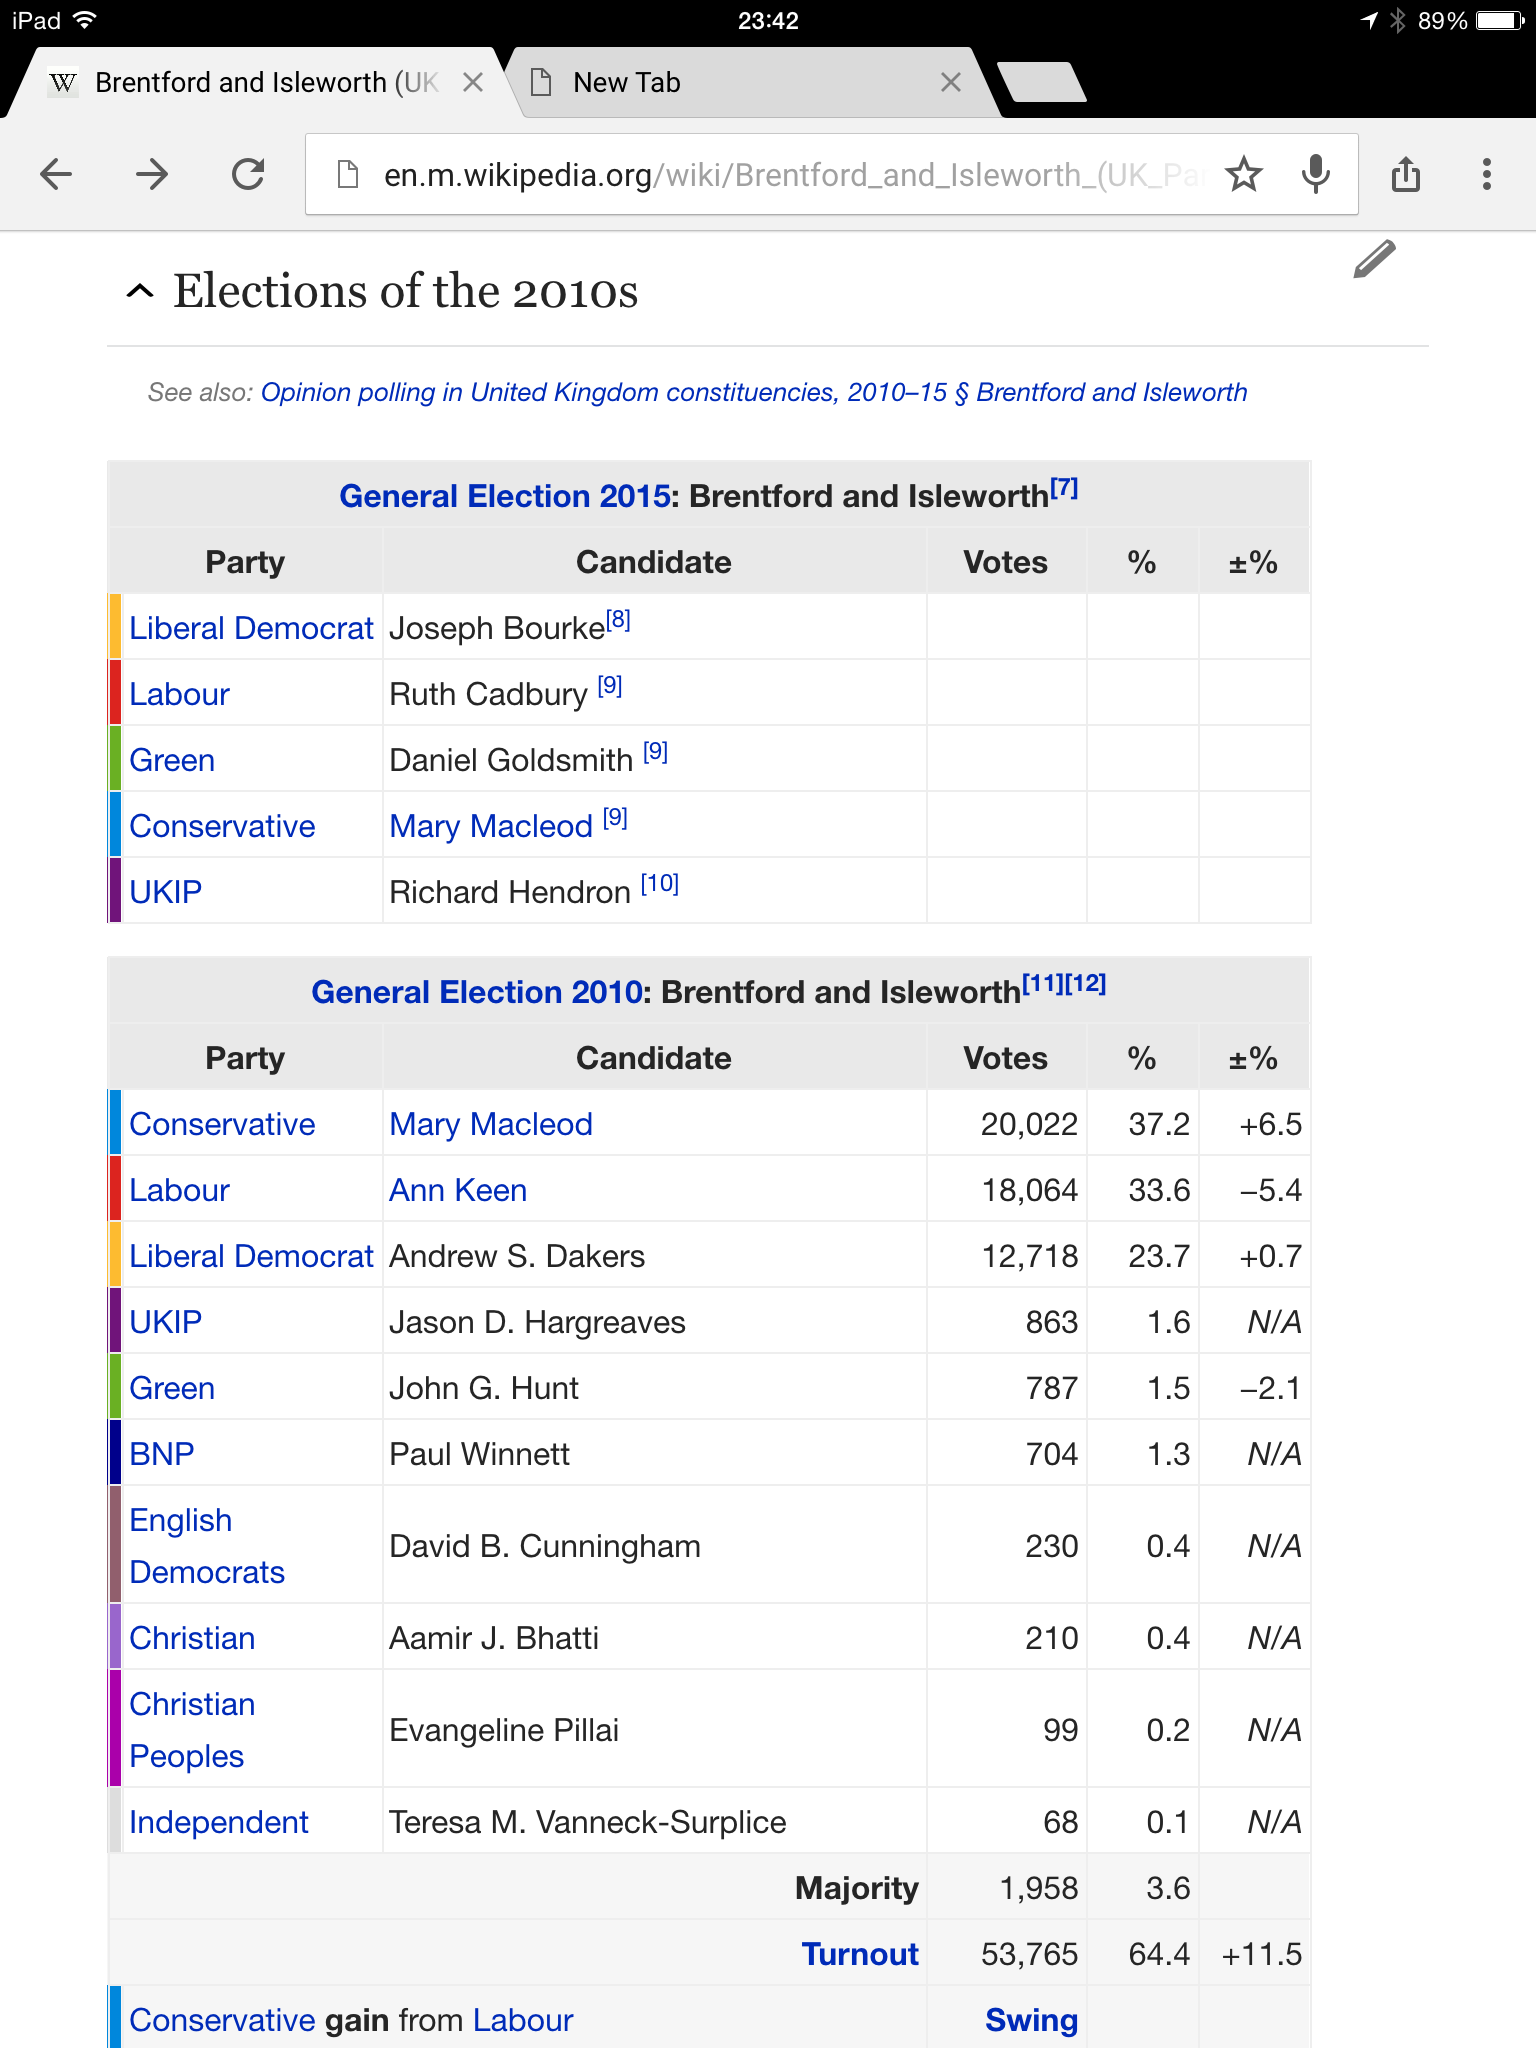 Screen shot from Wikipedia showing the Brentford and Isleworth candidates for election in 2010 and 2015.